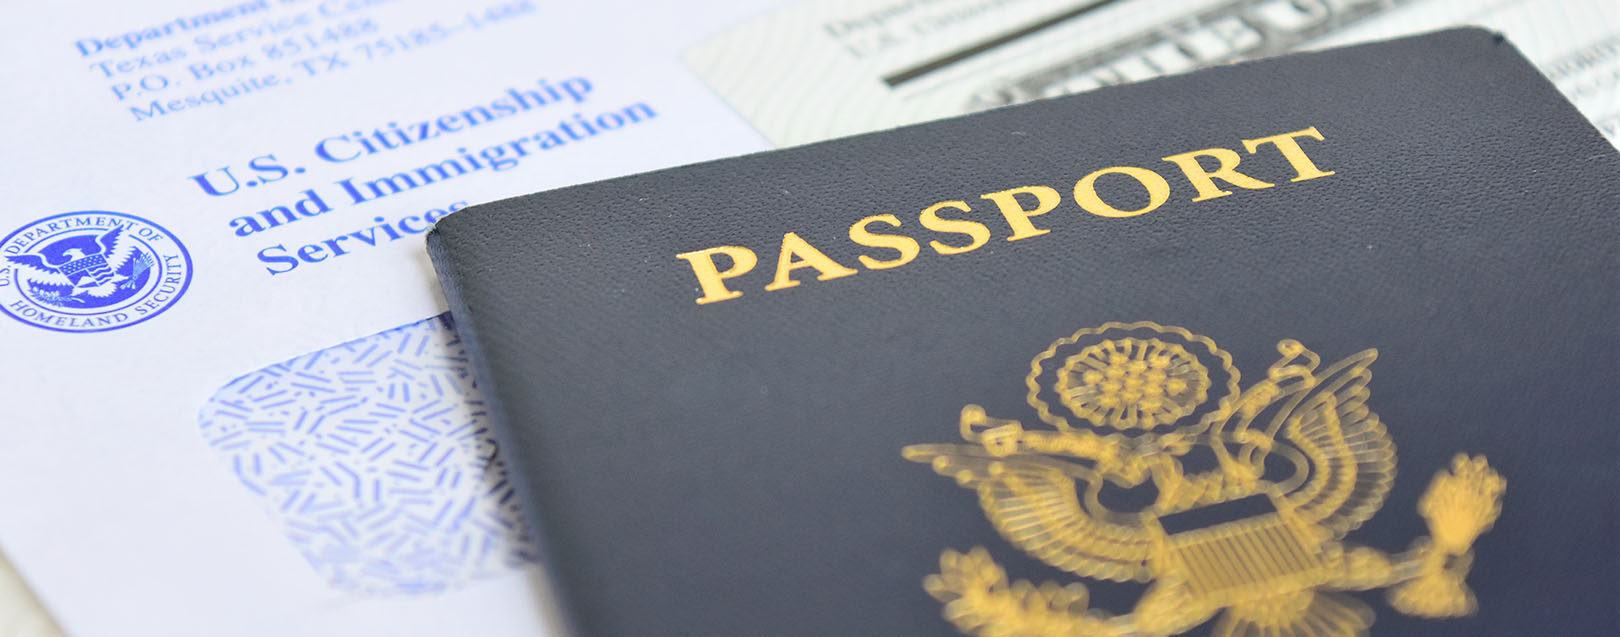 H-1B visas will increase when US economy grows at 4-5%: RHC